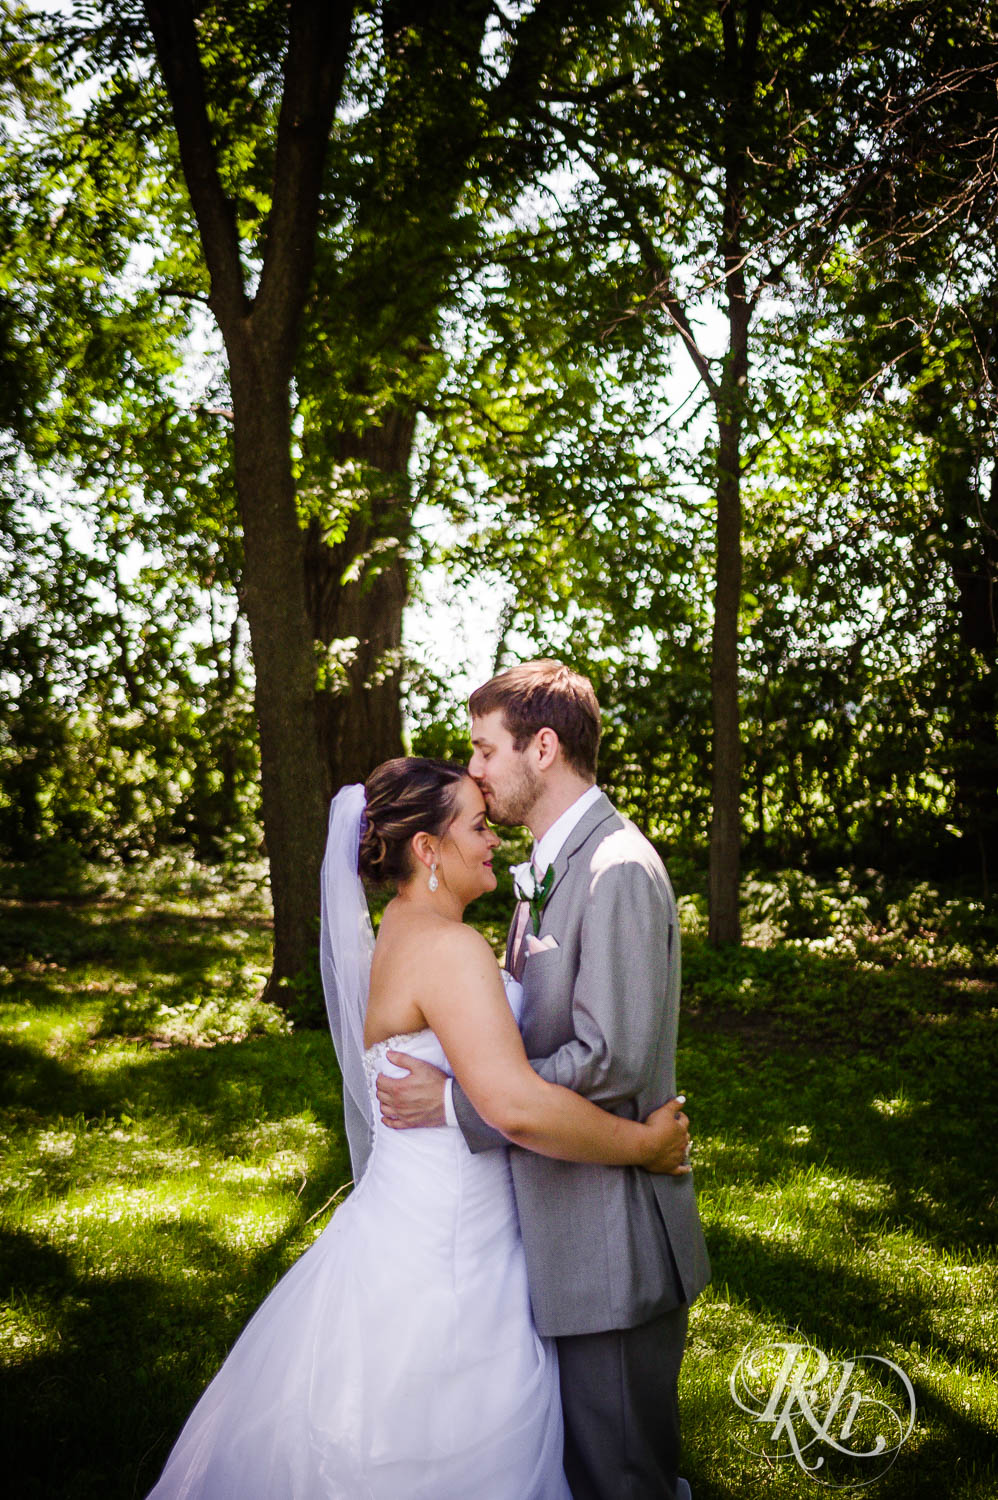 Katie & Alan - Minnesota Wedding Photography - Next Chapter Winery - RKH Images - Blog  (33 of 48).jpg